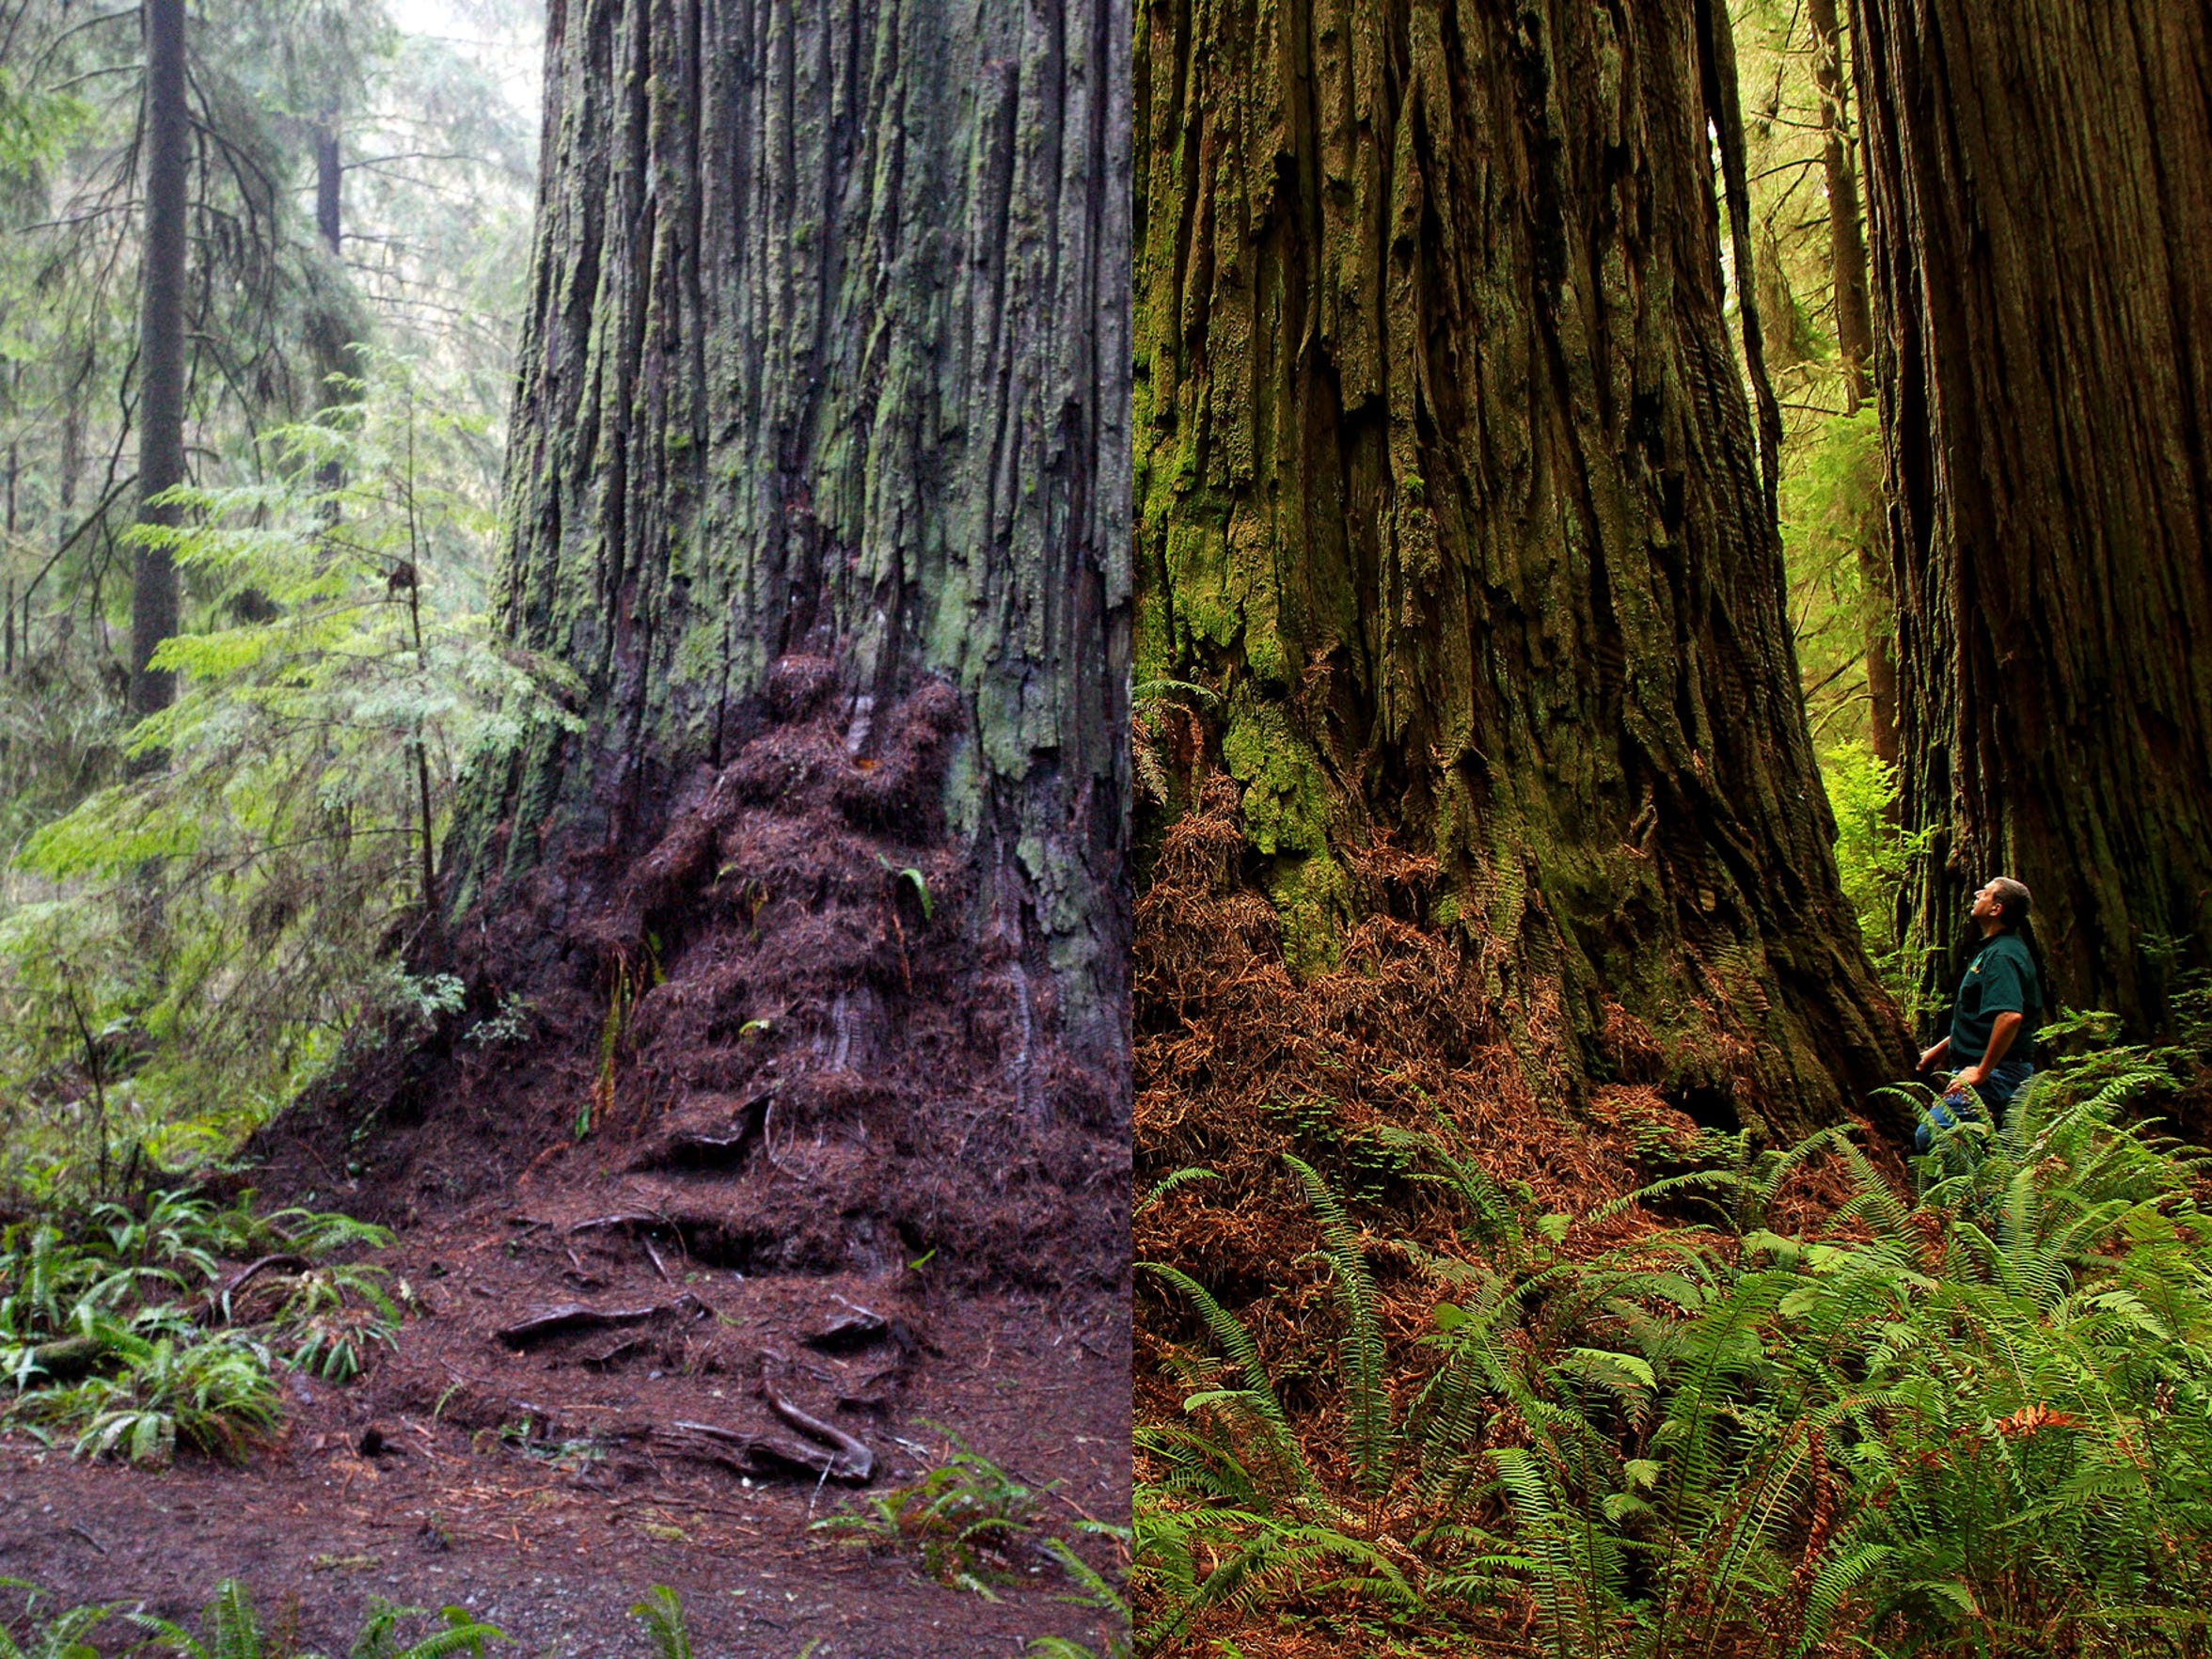 Left: Damage to ferns and roots around the tree in 2015. Right: A photo taken in 2010 showing ground cover before crowds arrived.